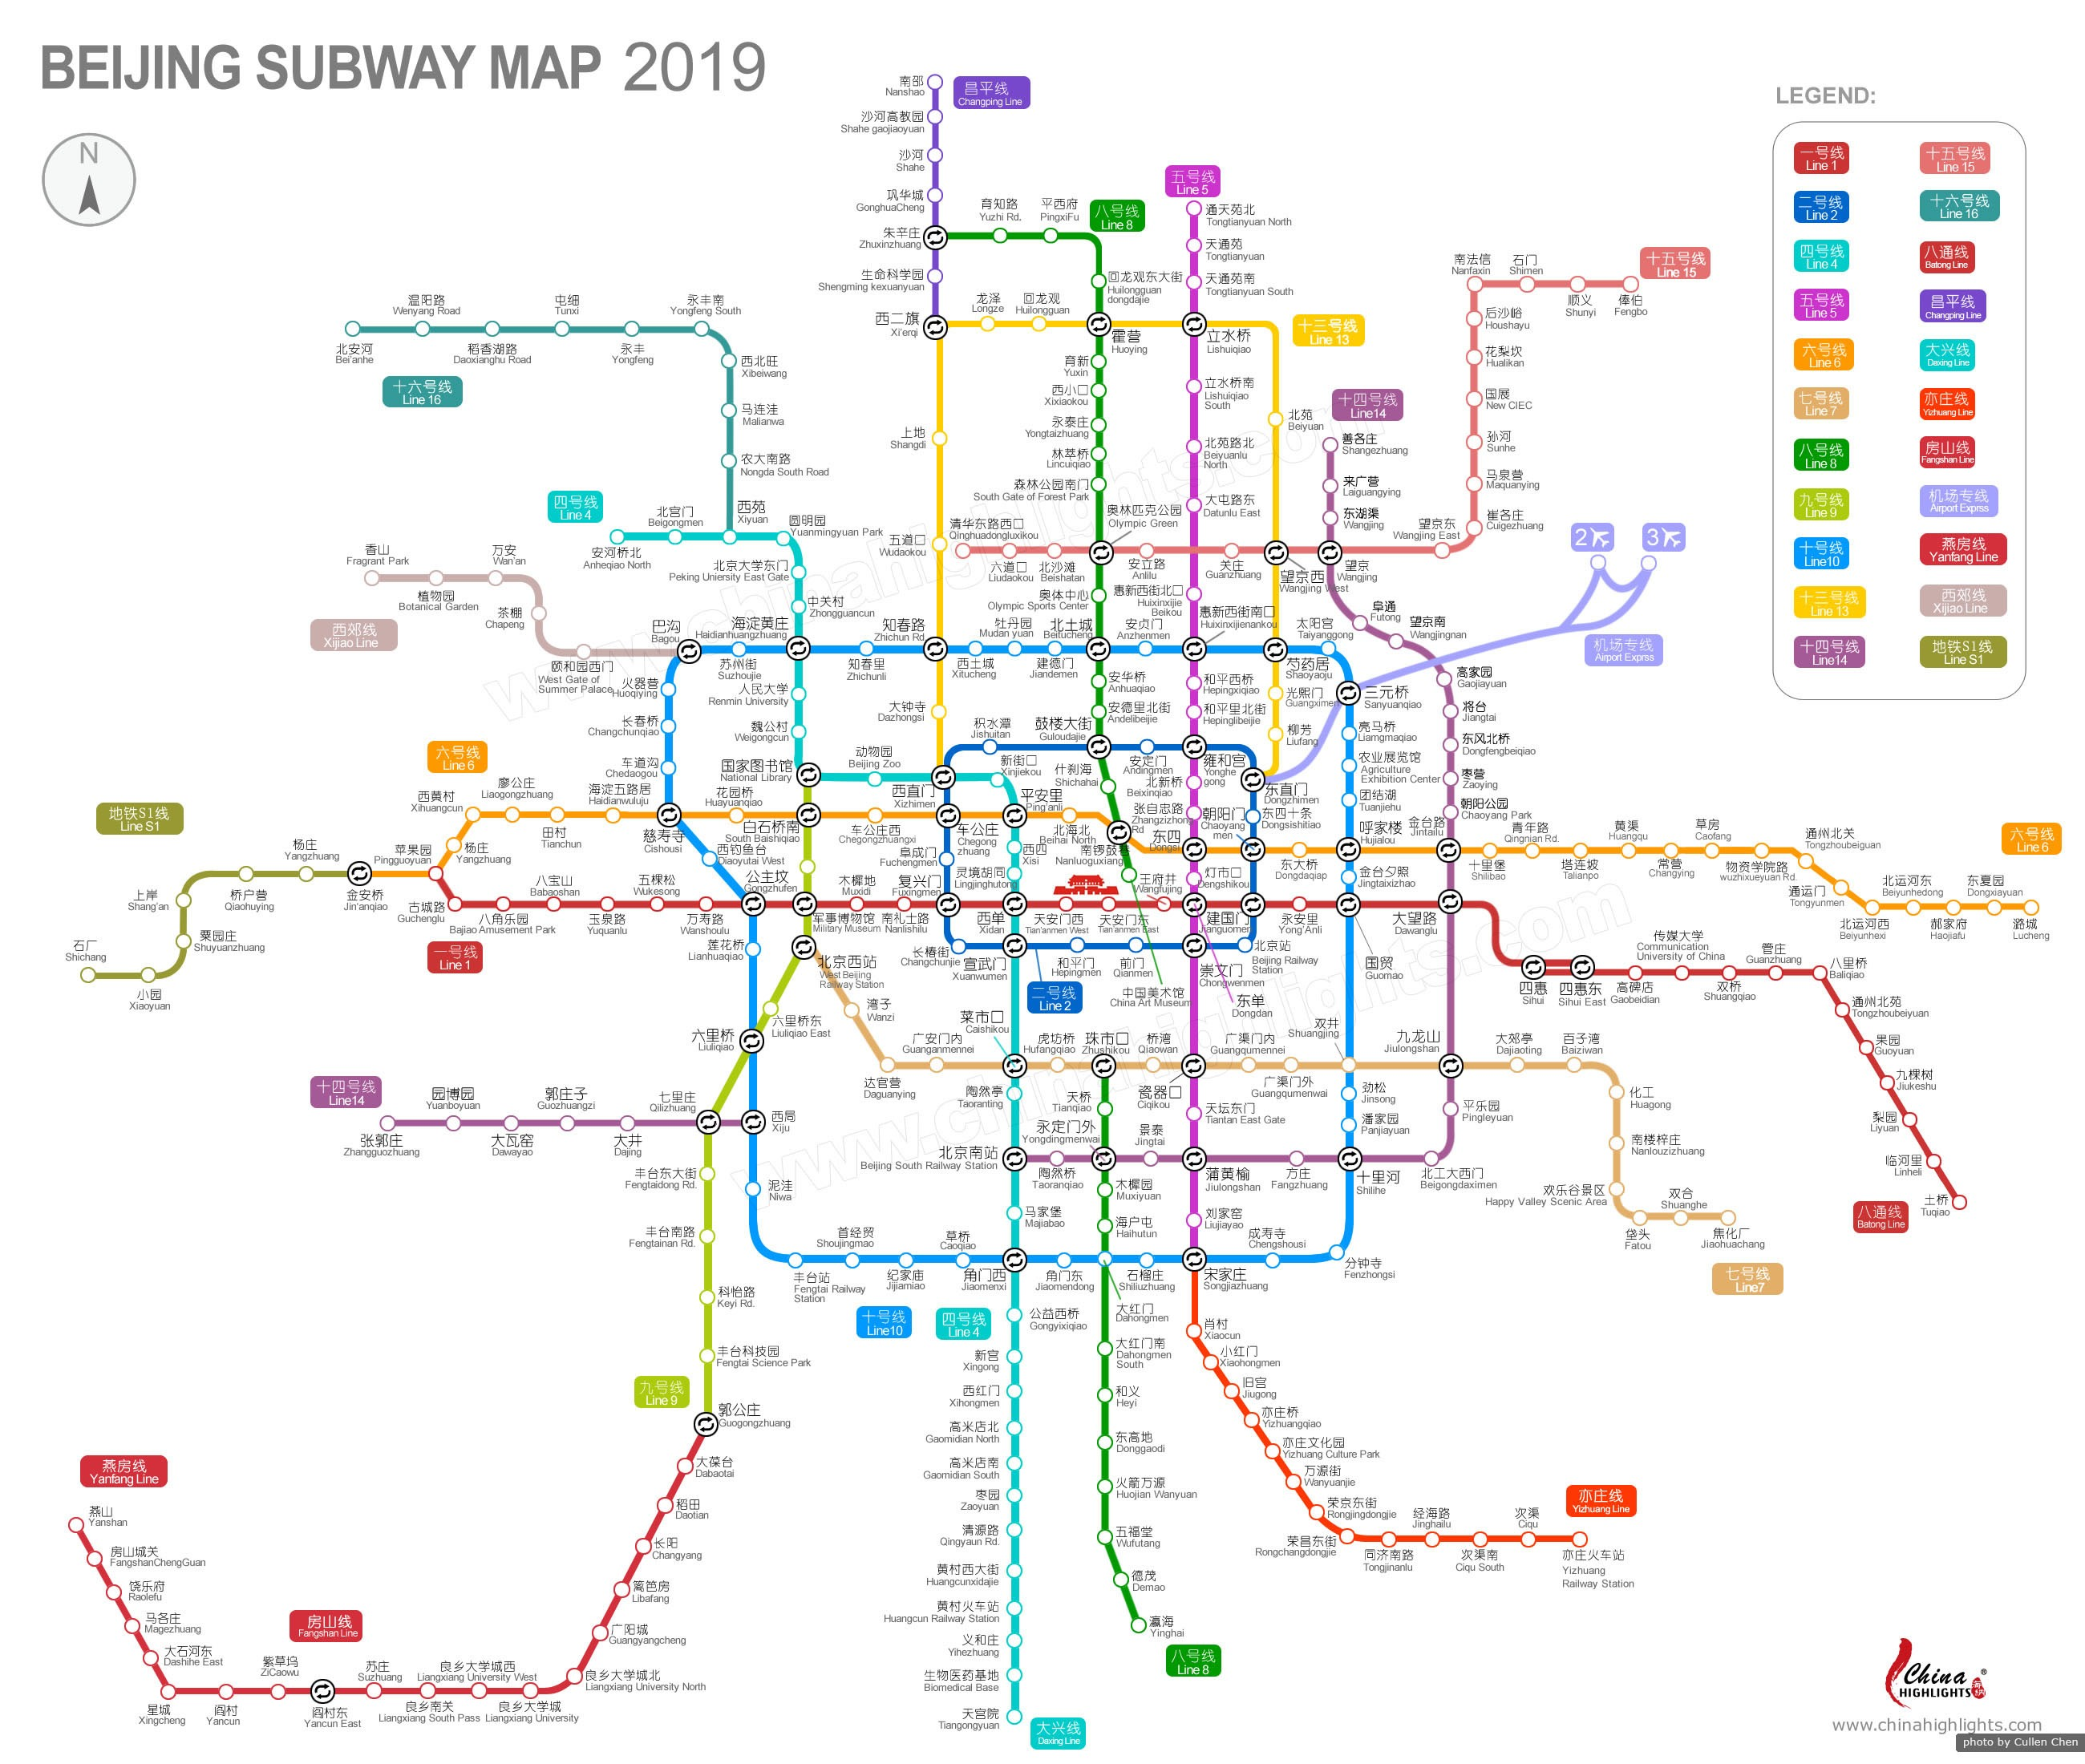 Beijing Subway 2019